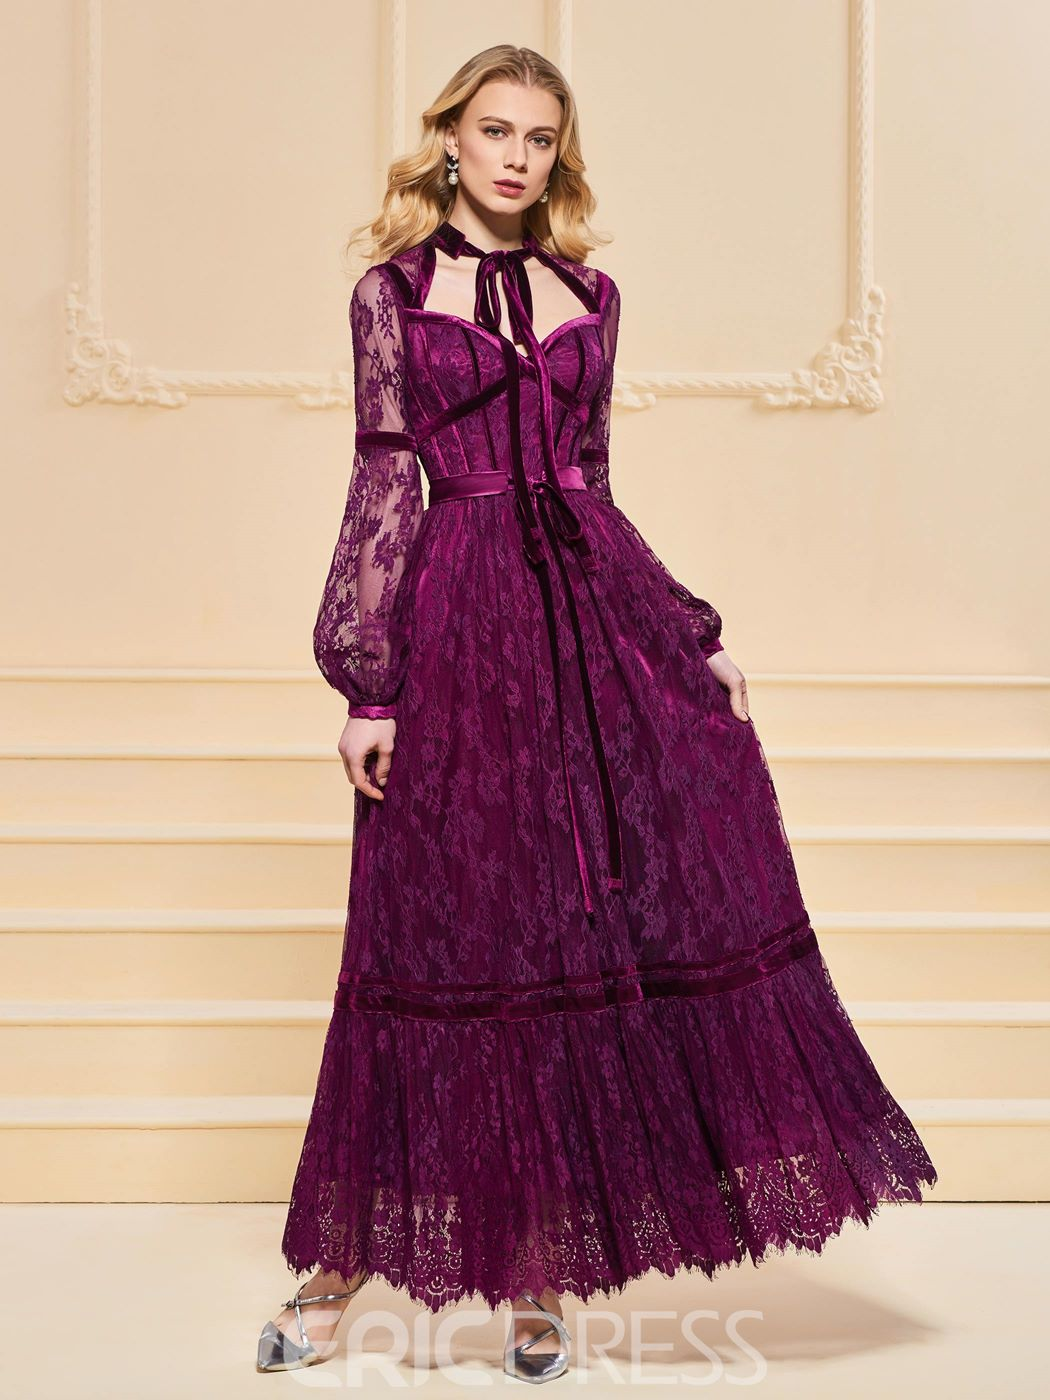 Ericdress A Line Long Sleeve Lace Vintage Prom Dress In Ankle Length